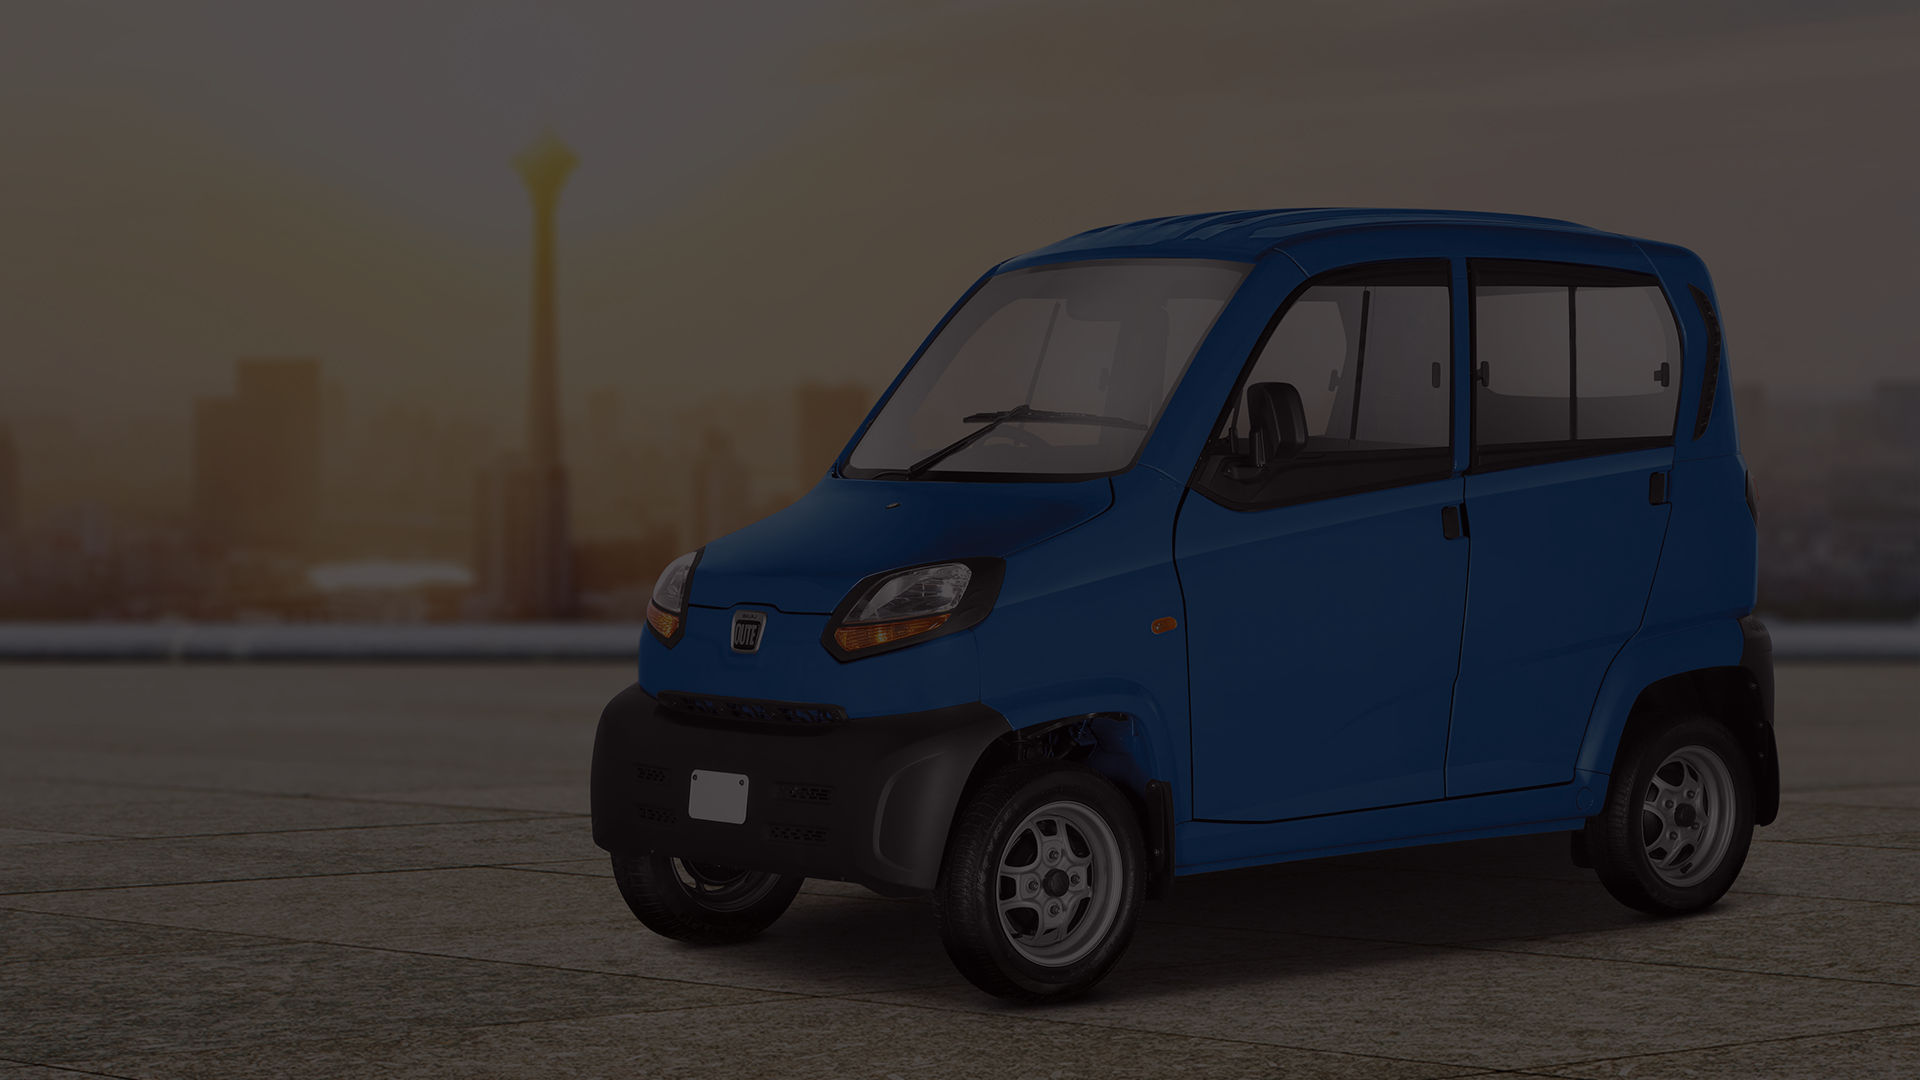 N1-The-SMART-quadricycle1920x1080